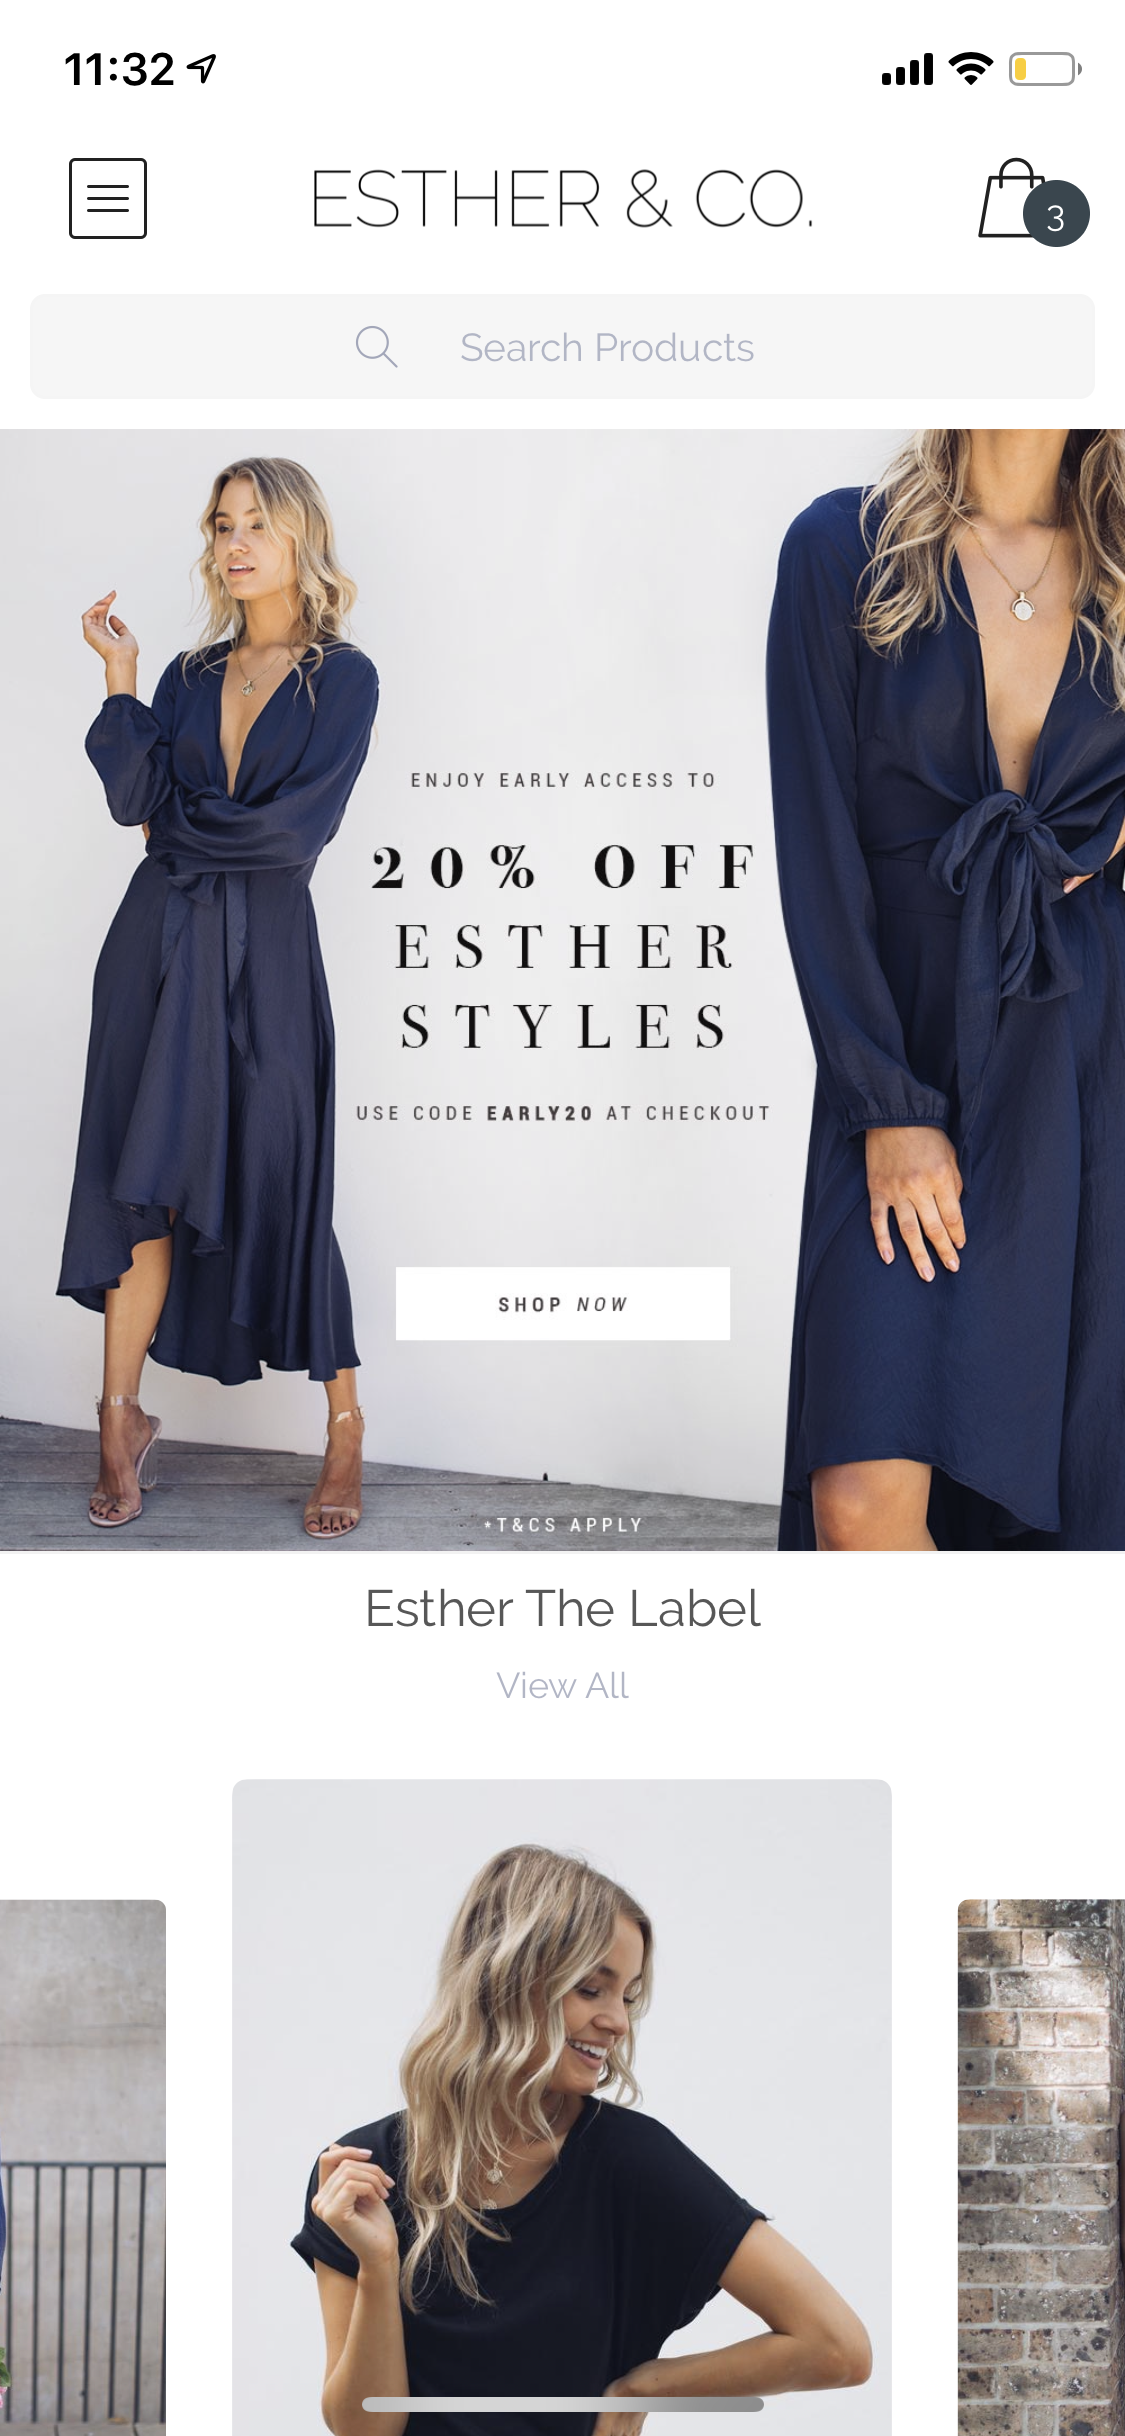 Esther___co_promo1.png